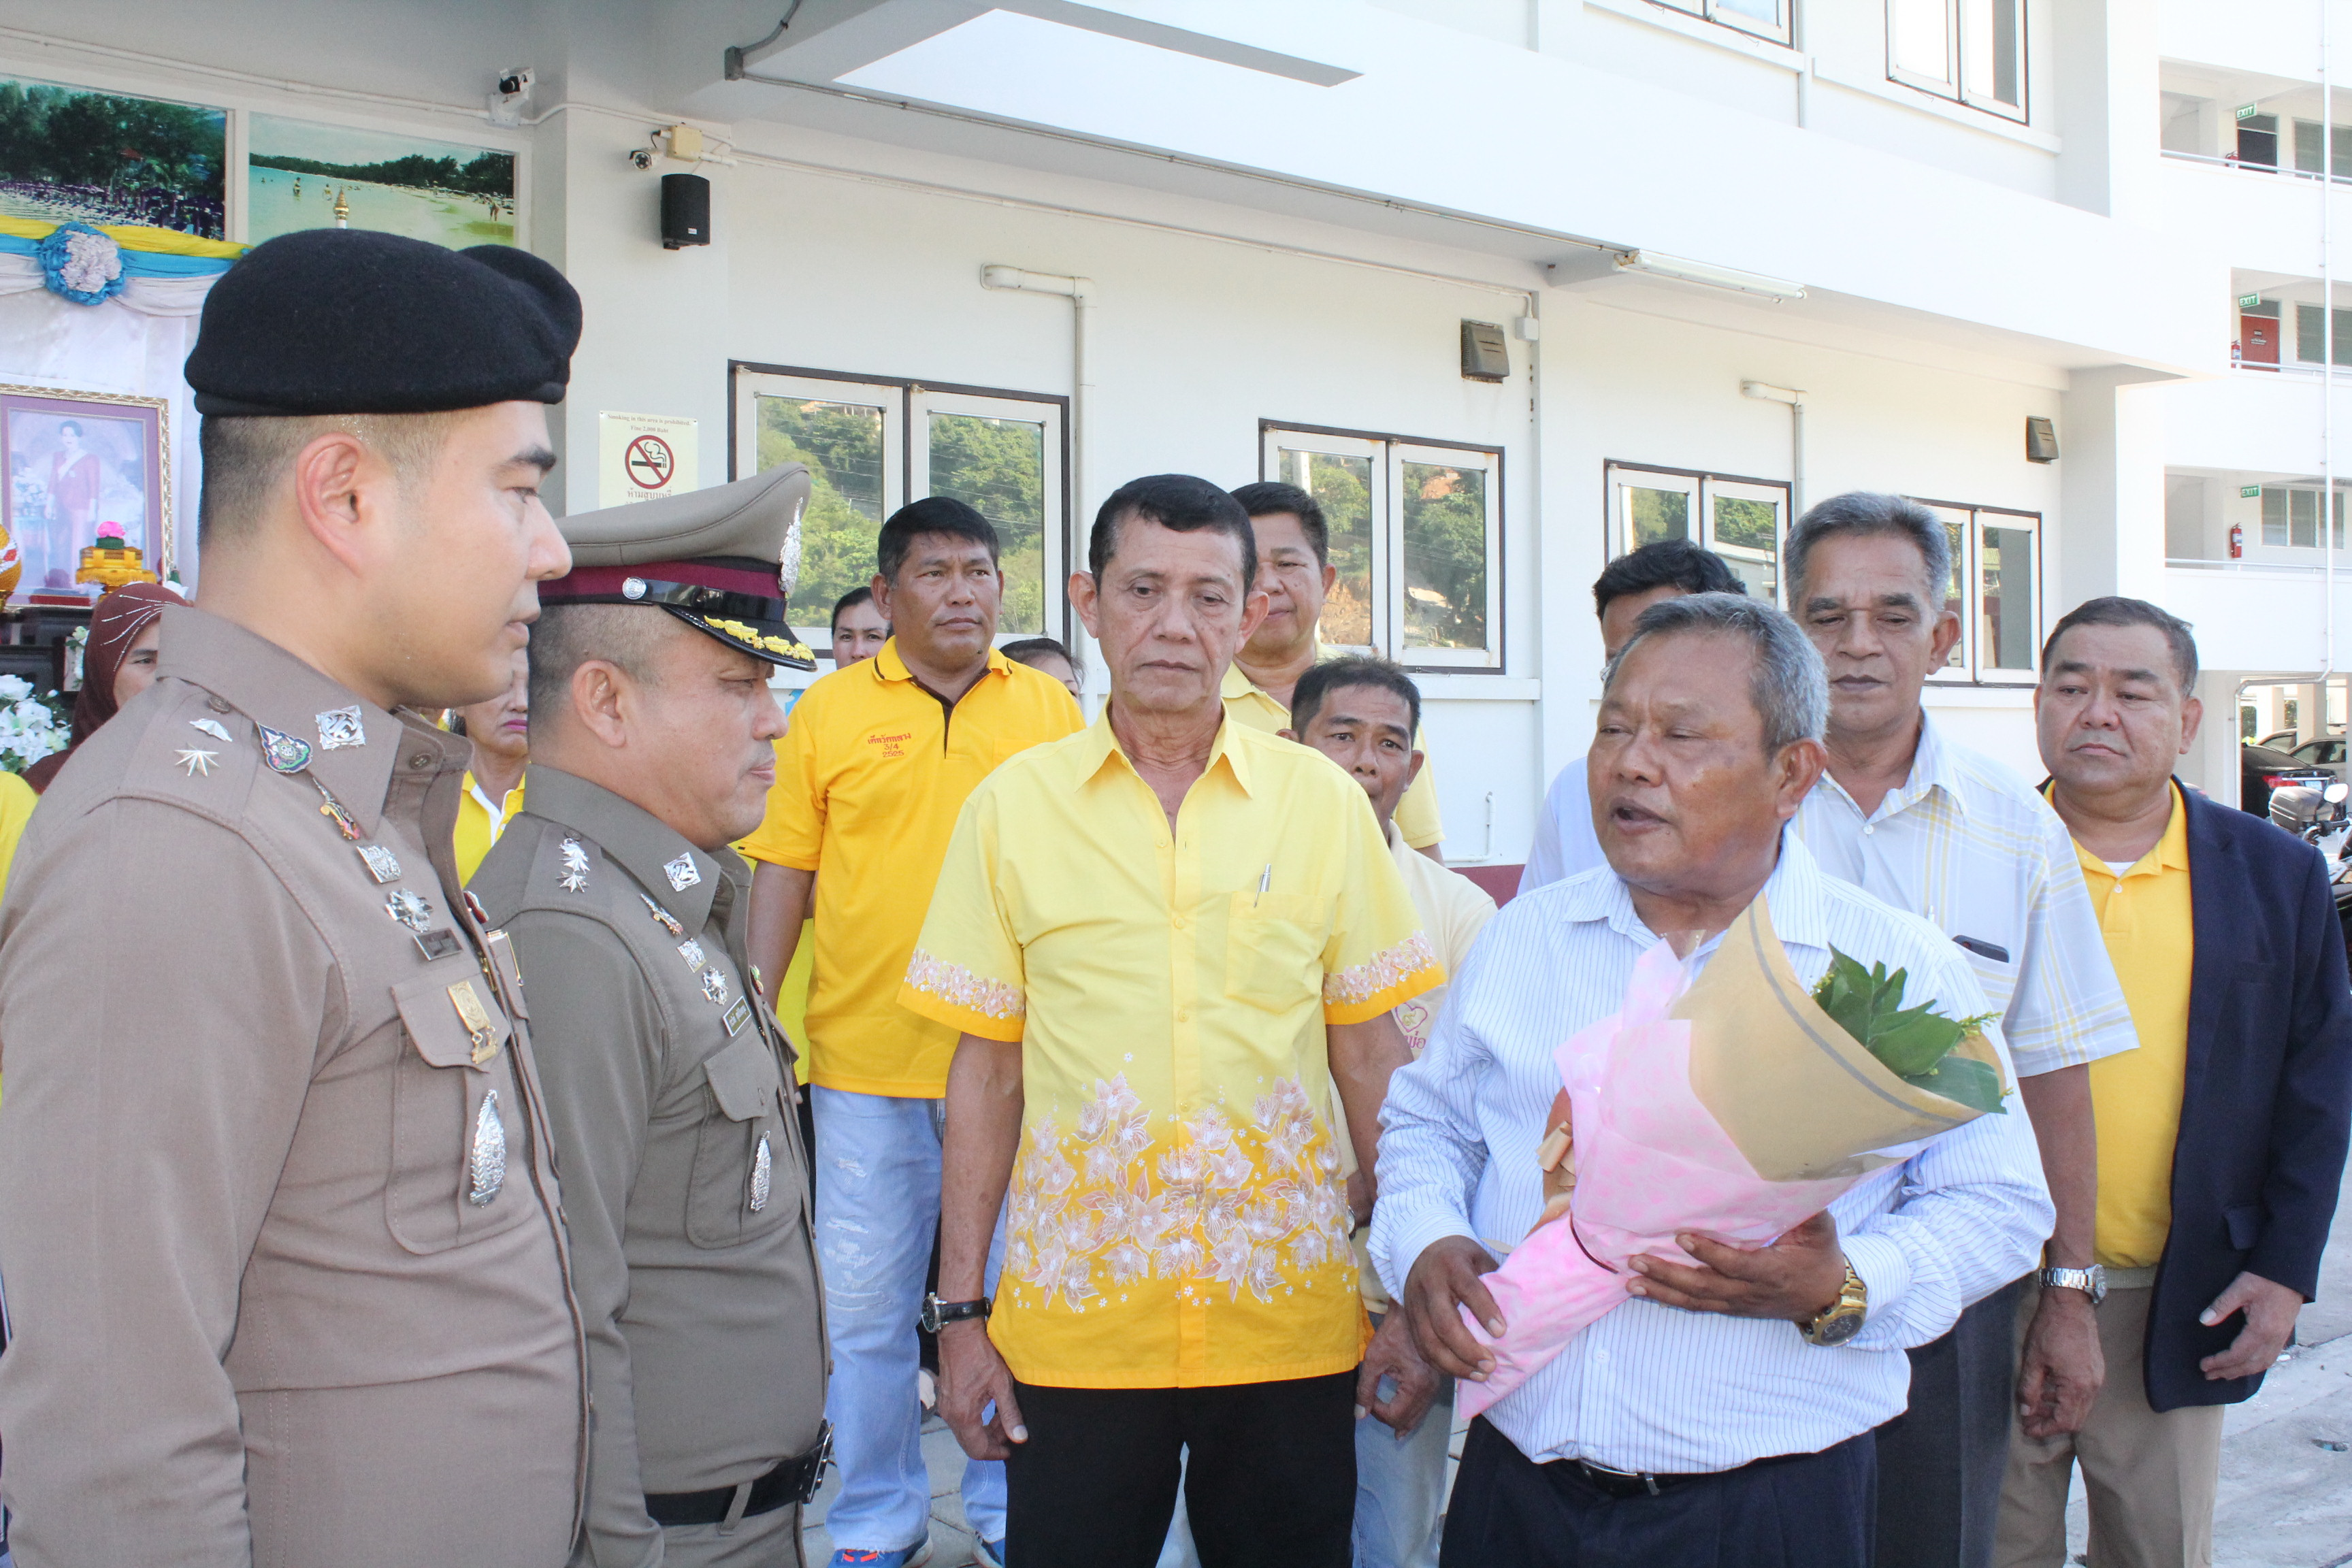 Locals giving a flower bouquet as a gesture of support to Prateung on Aug. 19.